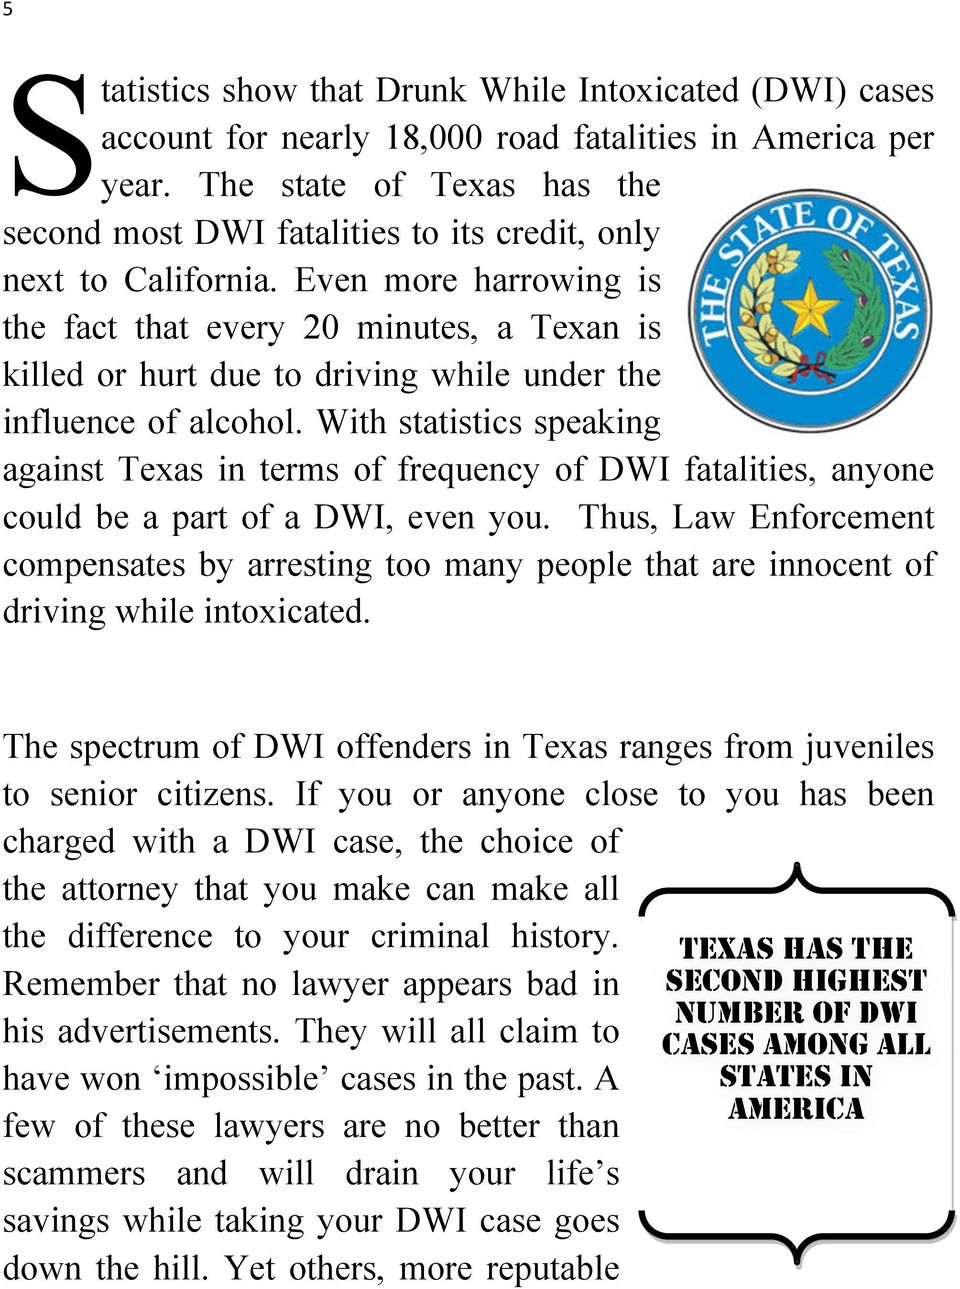 Even more harrowing is the fact that every 20 minutes, a Texan is killed or hurt due to driving while under the influence of alcohol.